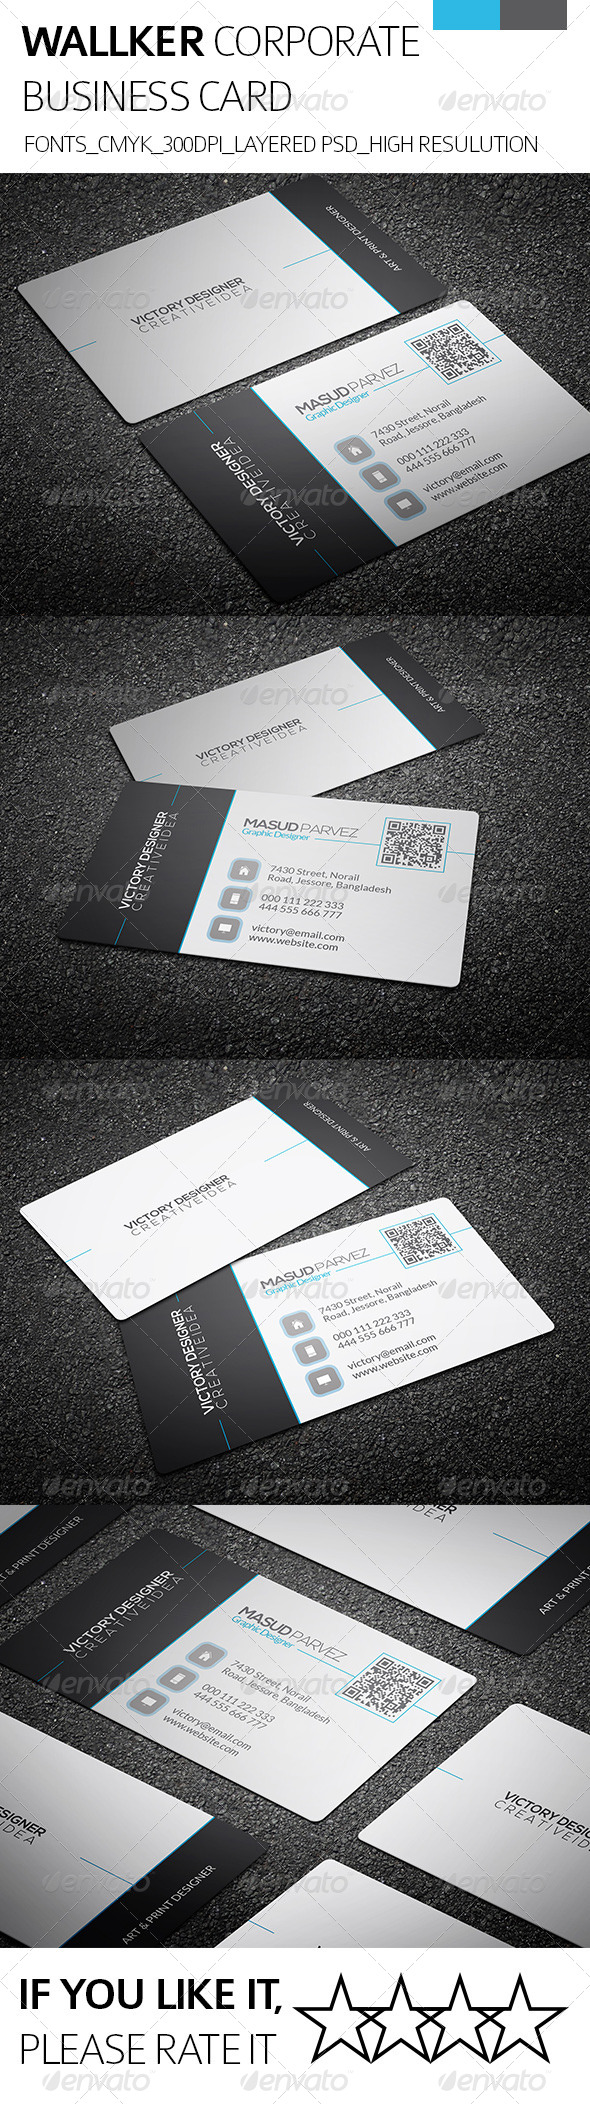 Wallker & Corporate Business Card - Corporate Business Cards